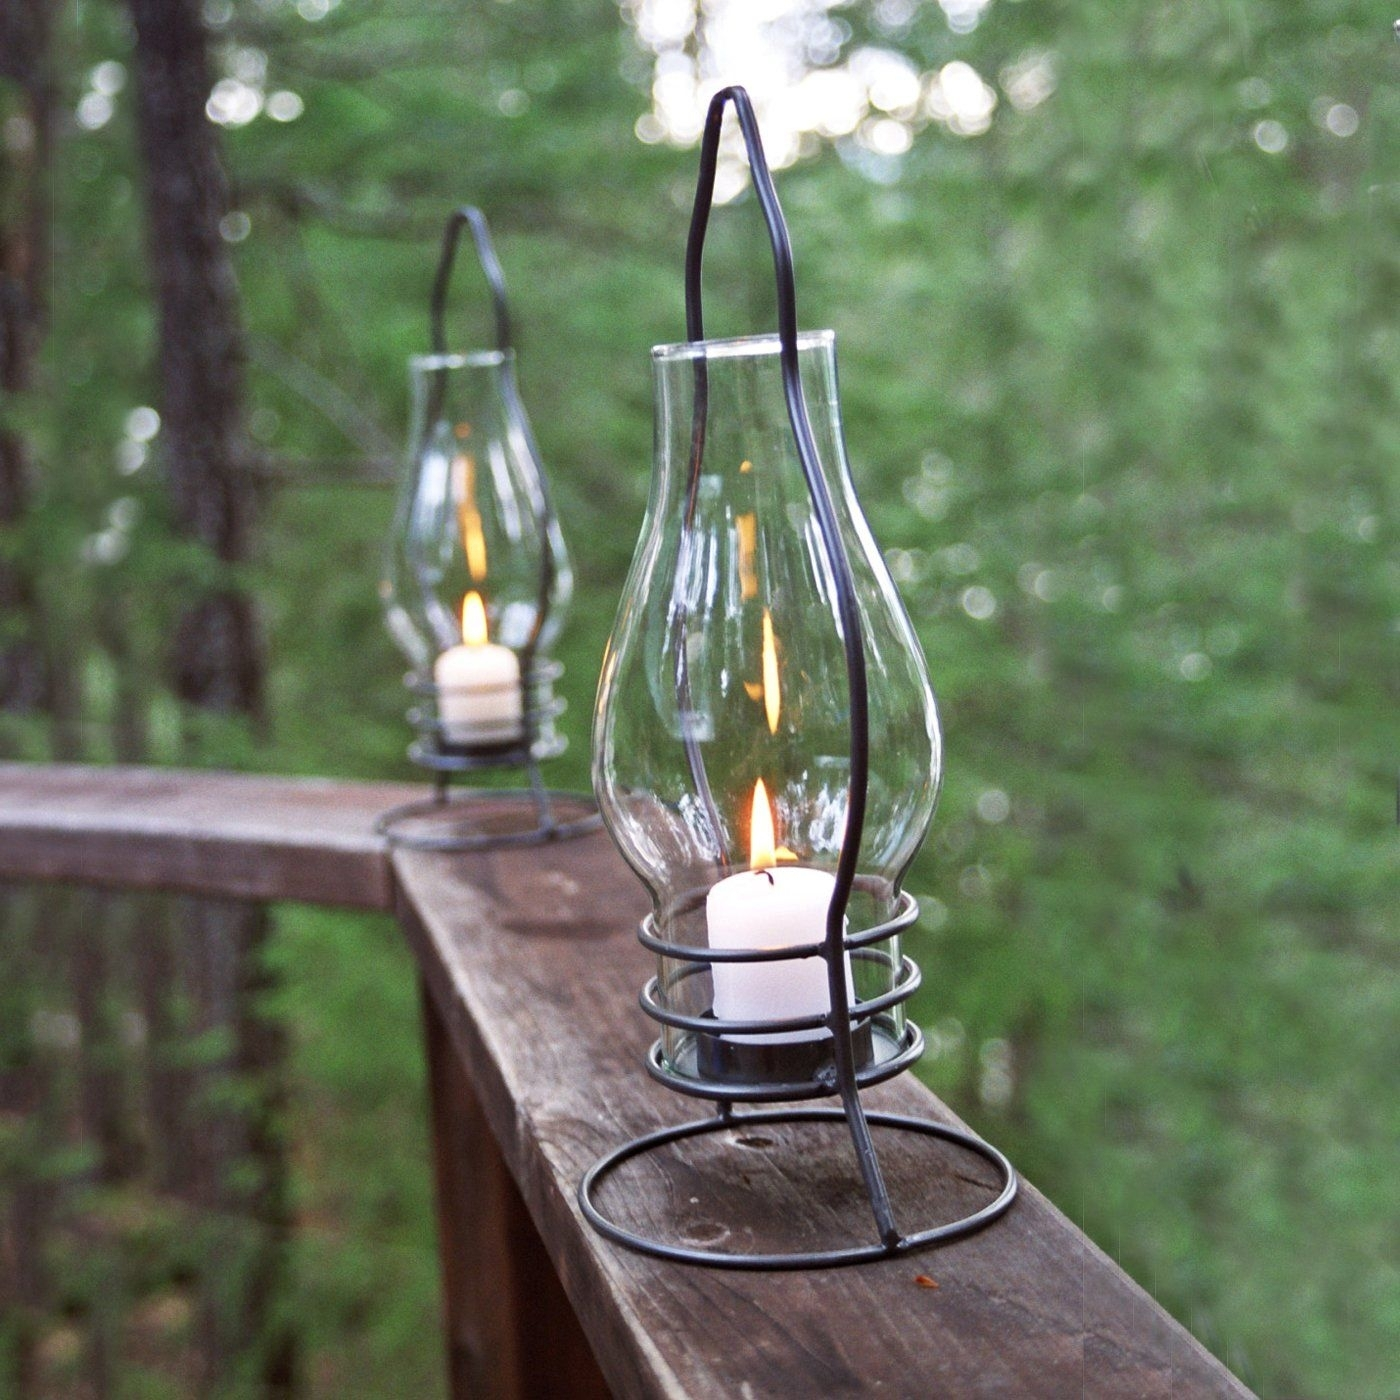 Pangaea Home And Garden Fm-C2350 Iron Outdoor Table Lantern #themine in Outdoor Table Lanterns (Image 15 of 20)